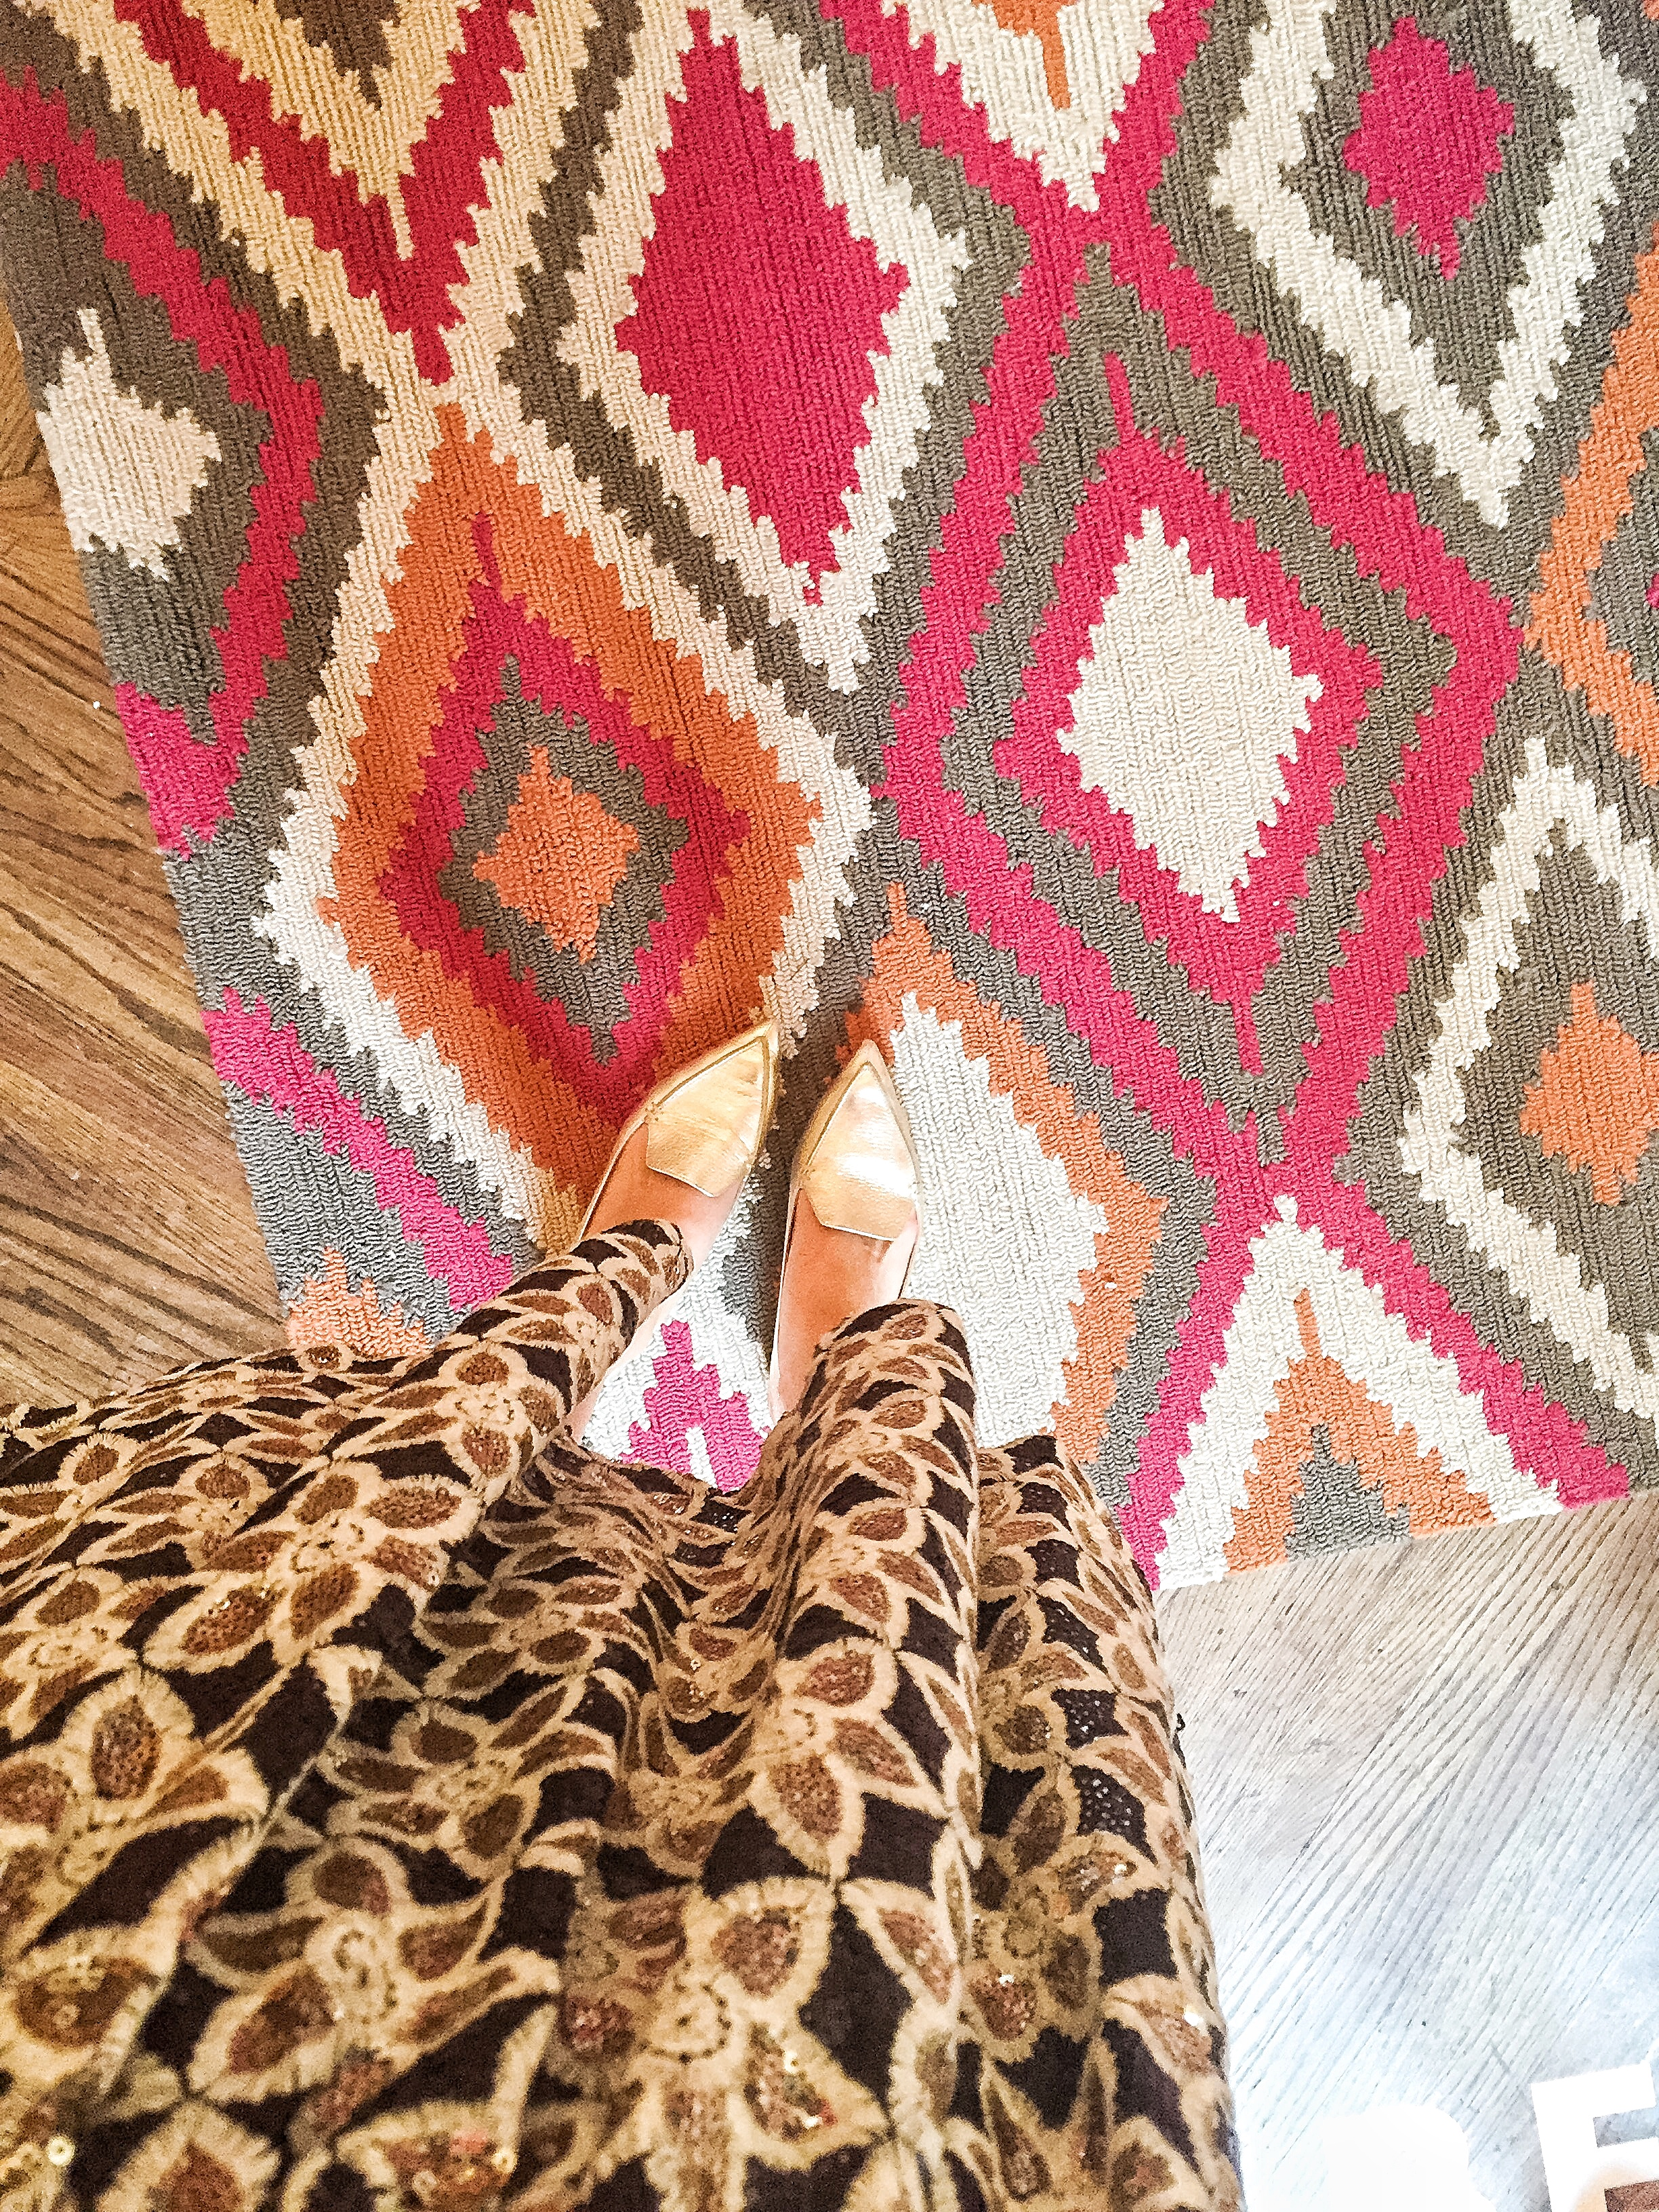 cute picture of dress and carpet